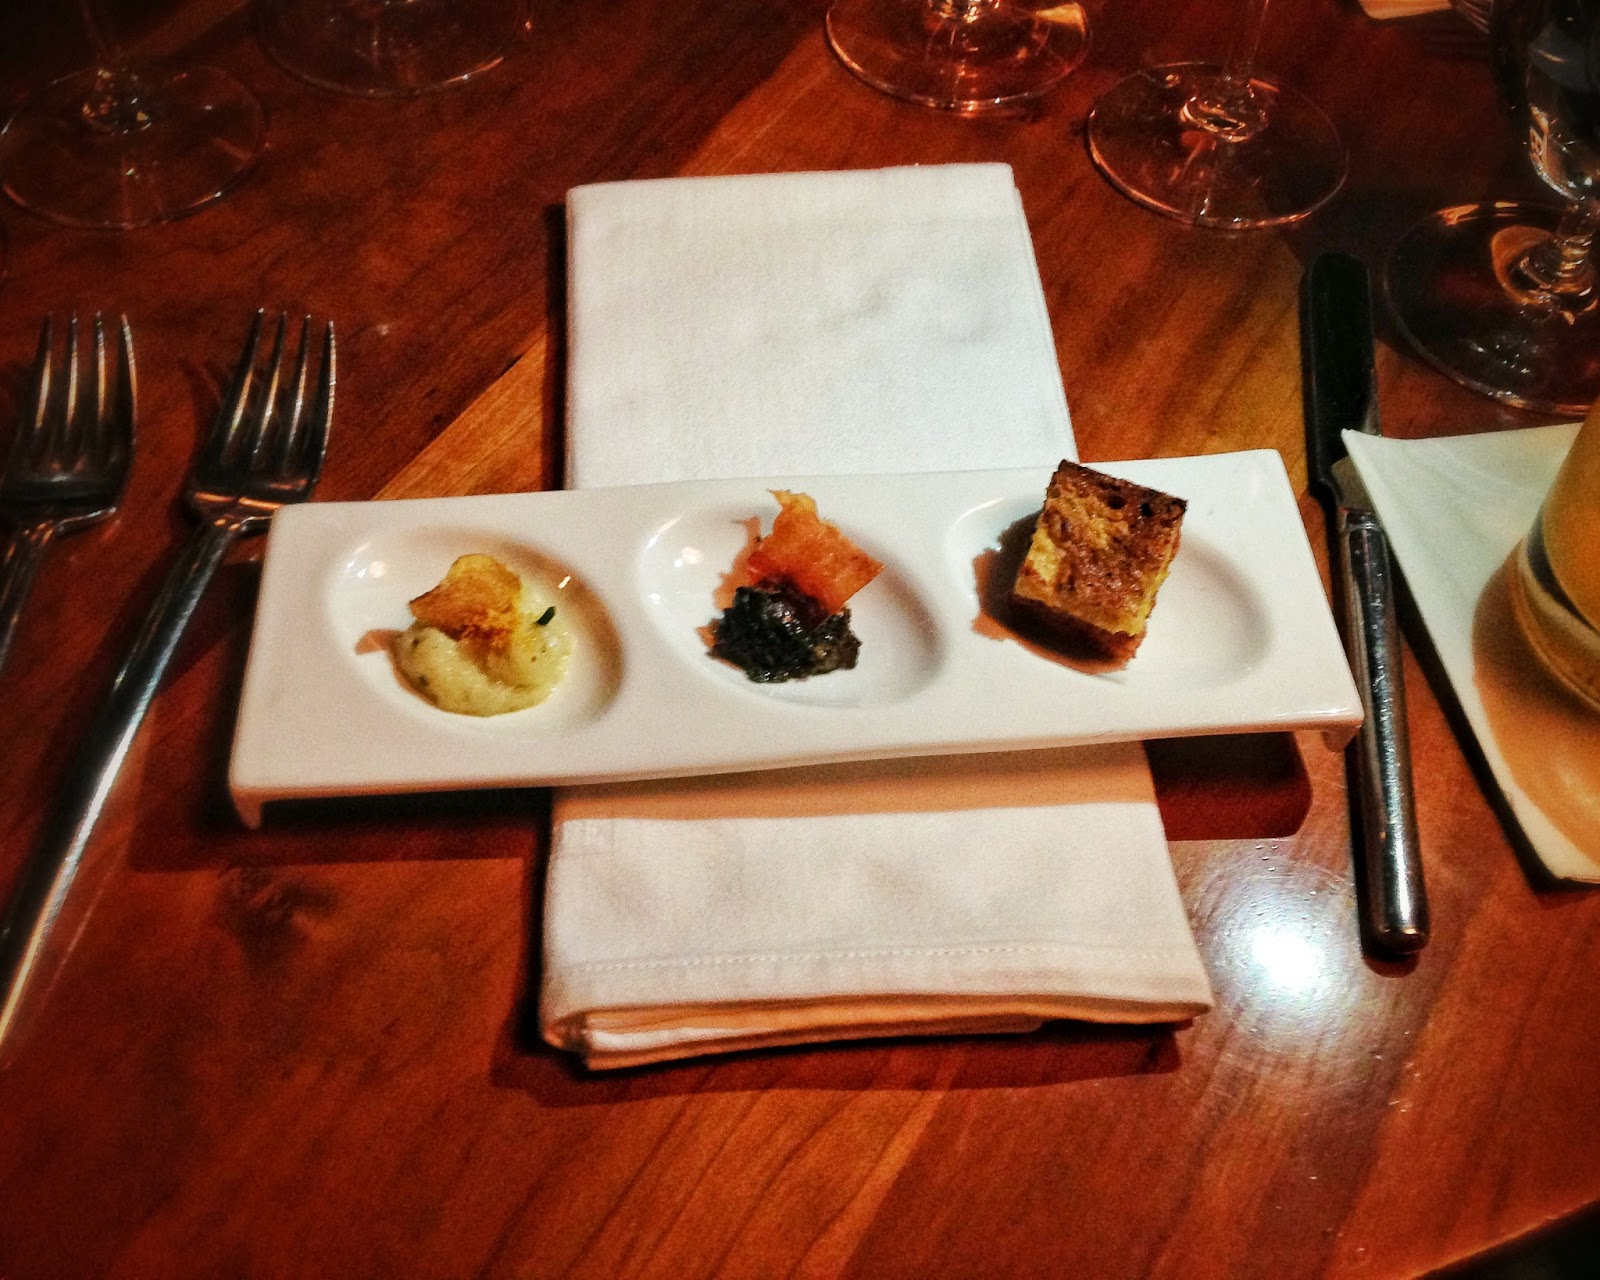 Amuse trio at 610 Magnolia located in Louisville Kentucky